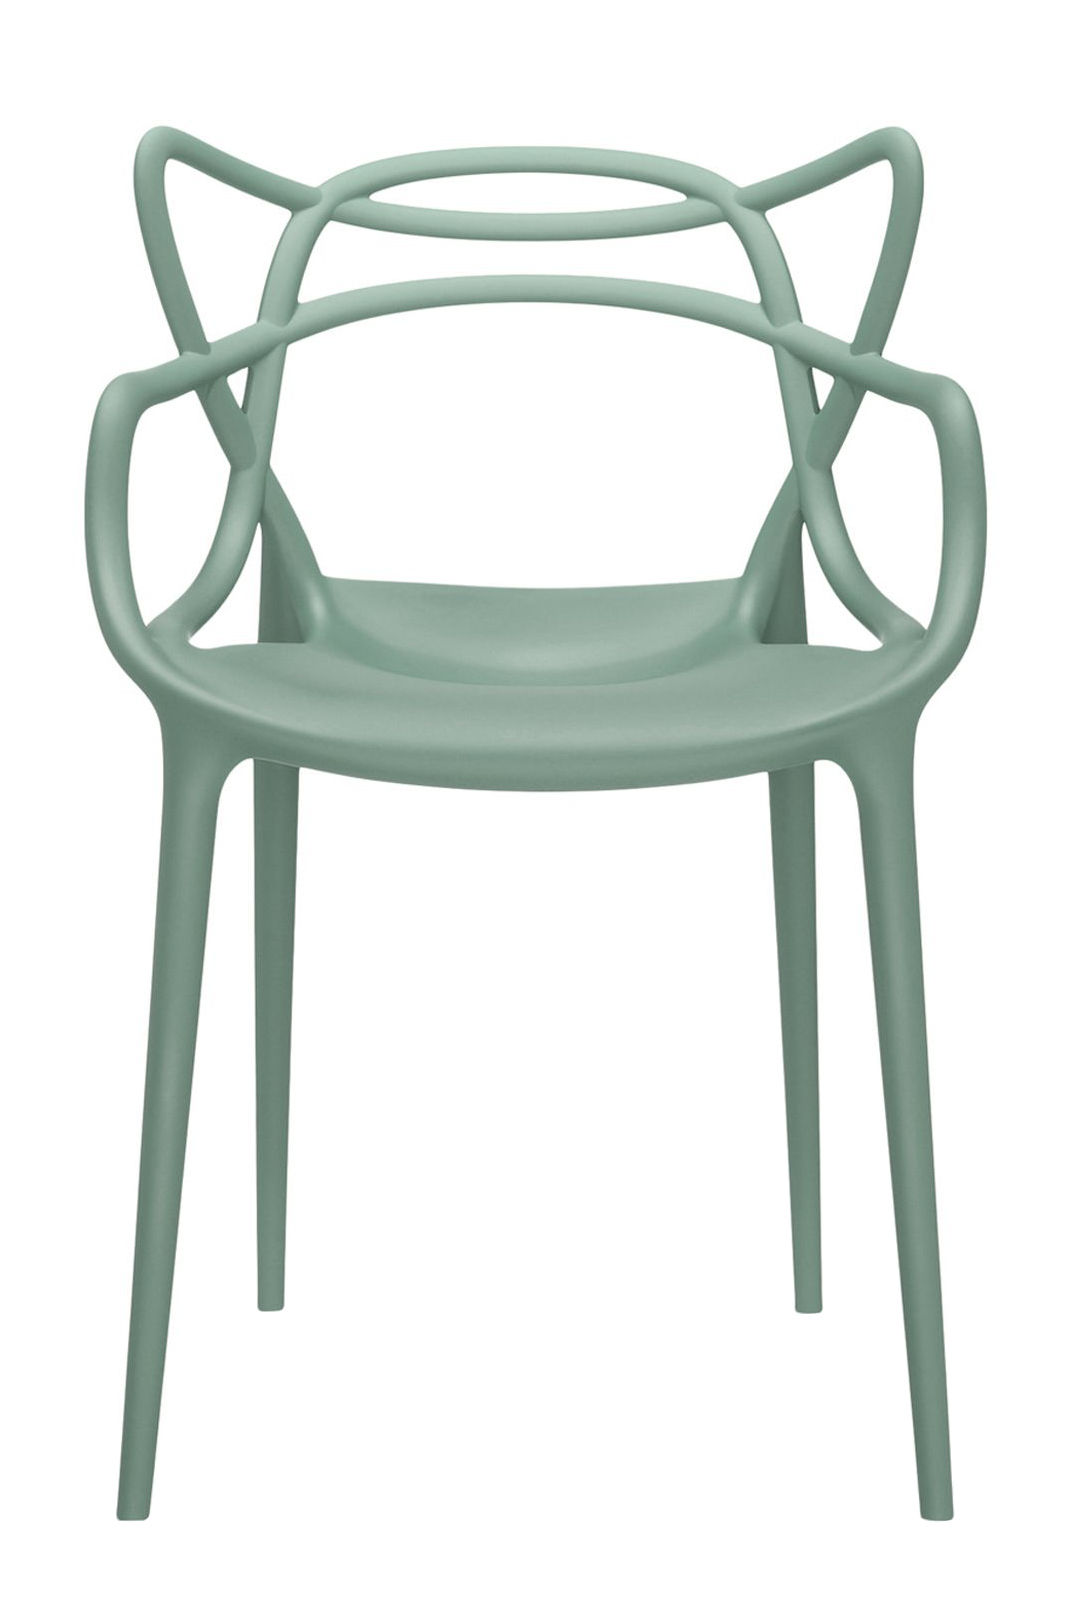 Furniture - Chairs - Masters Stackable armchair - Plastic by Kartell - Green sage - Polypropylene